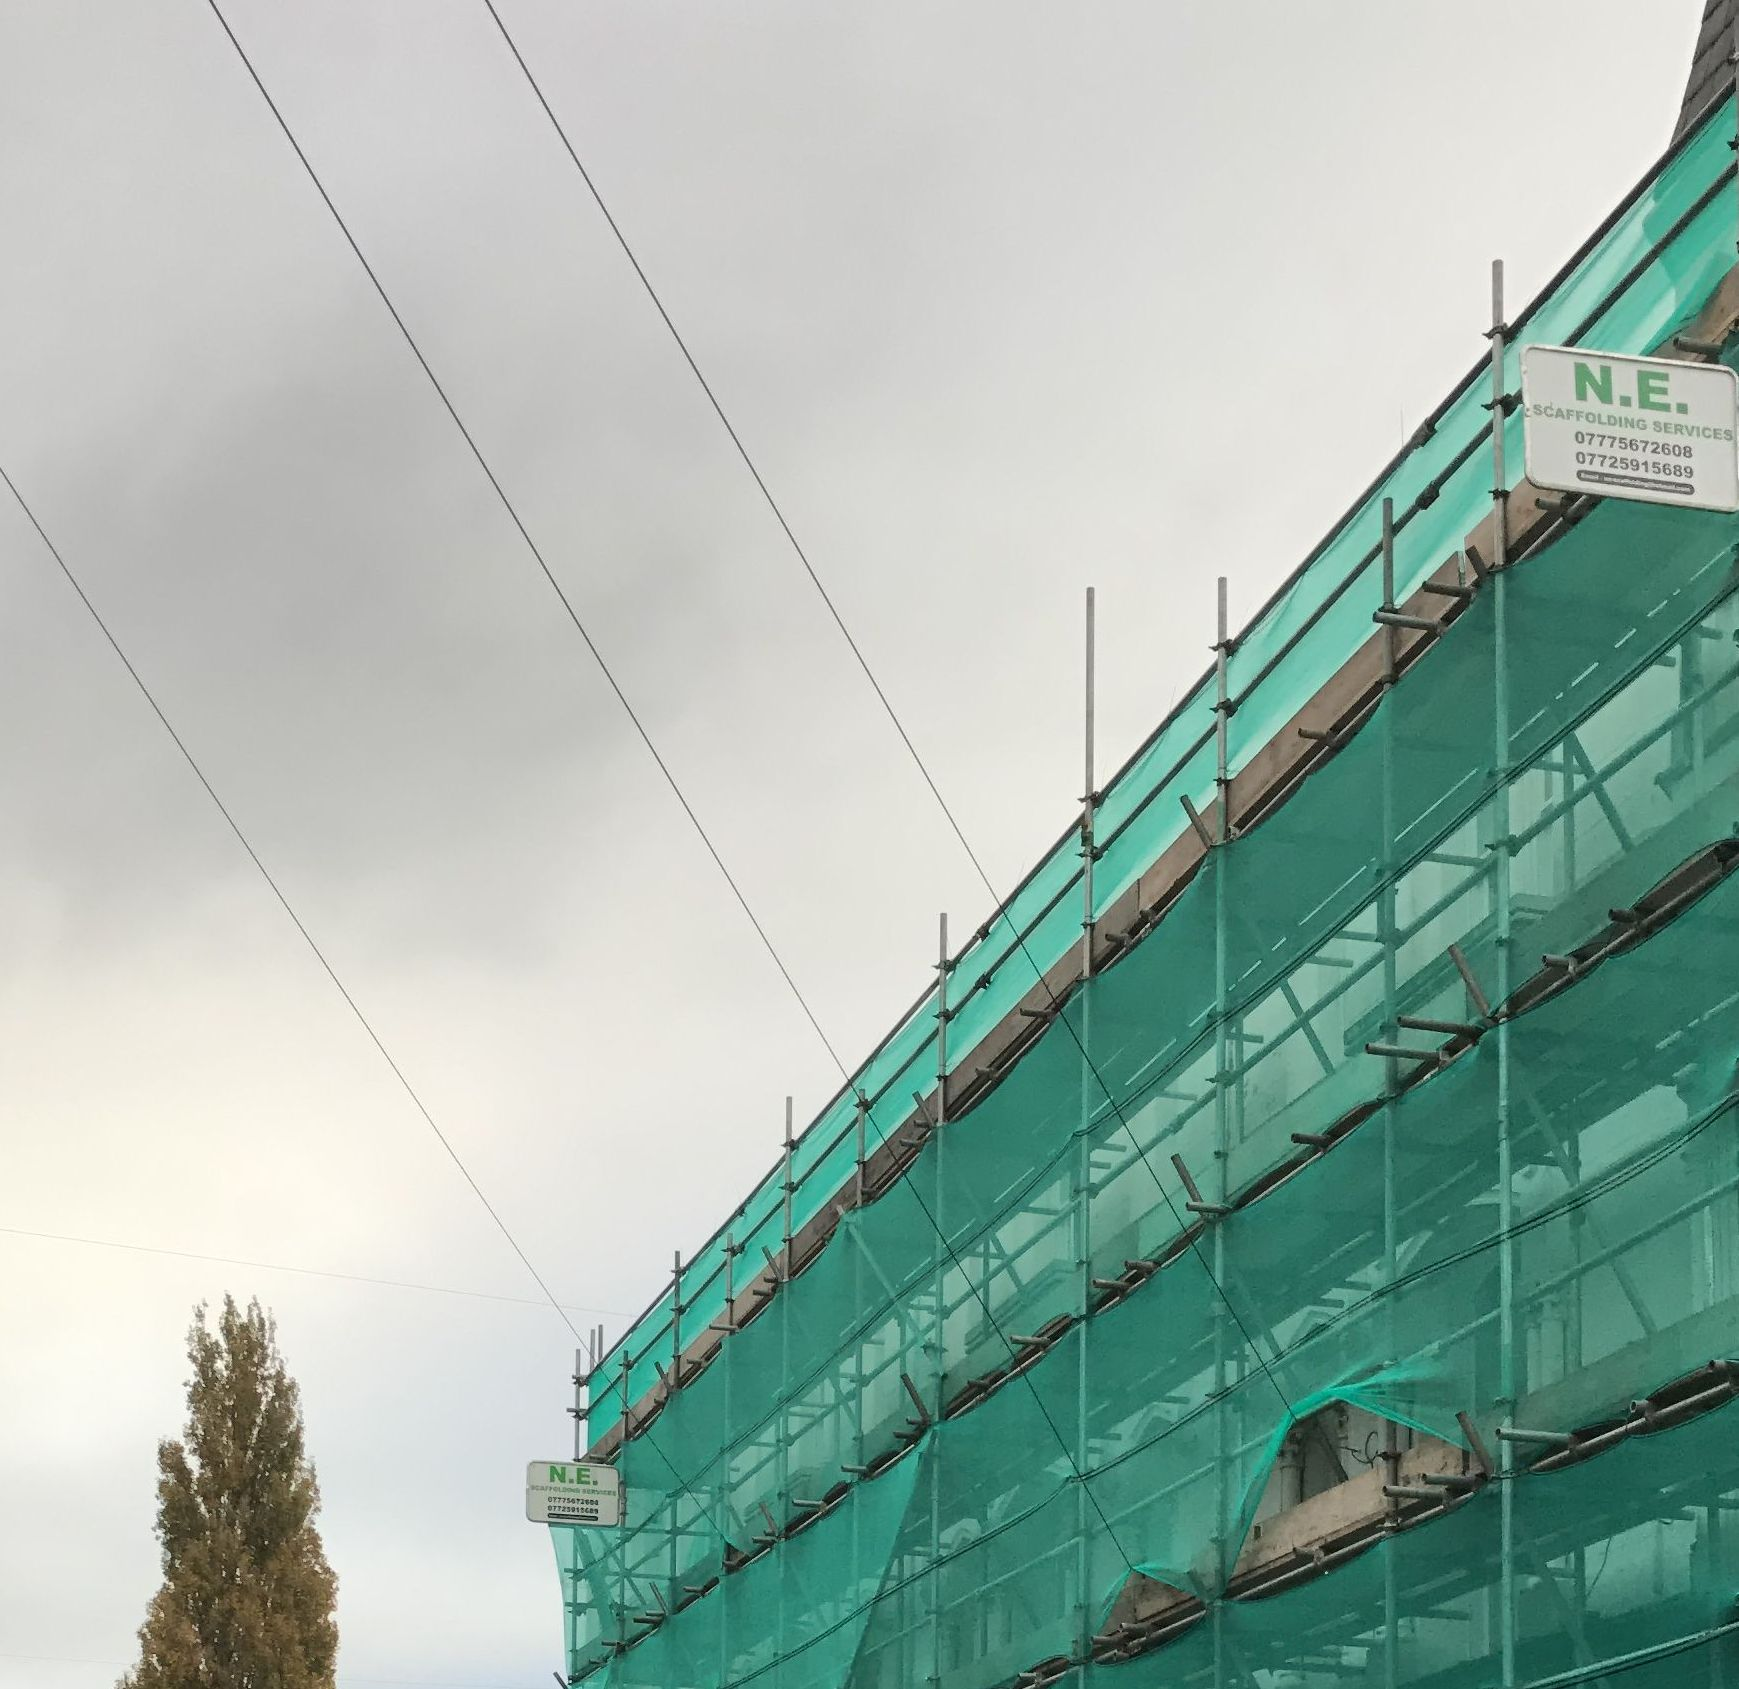 recent project for scaffolding in st helens